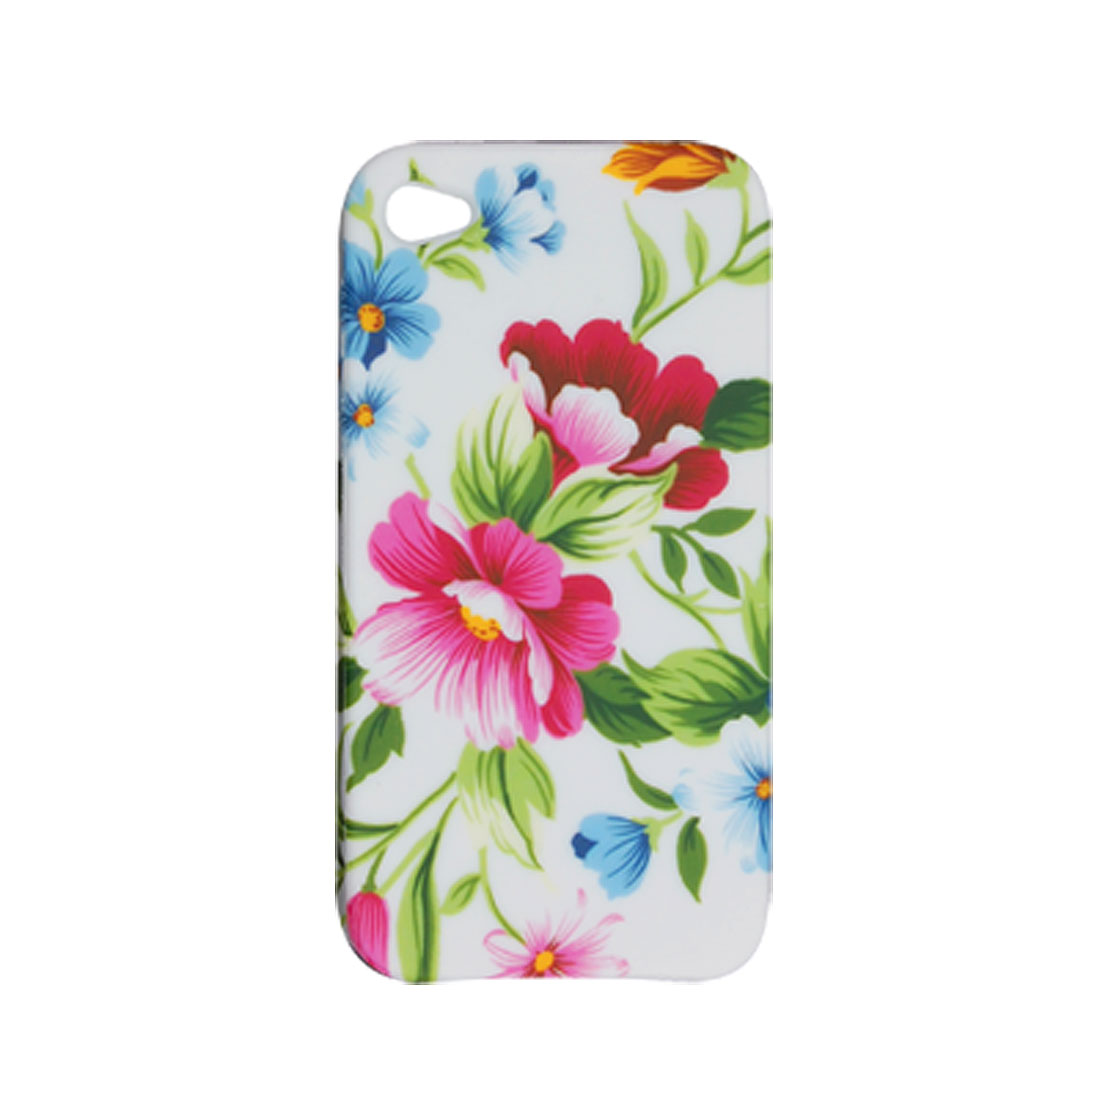 Pink Peach Blossom Print Soft Plastic Shield Case for Apple iPhone 4 4G